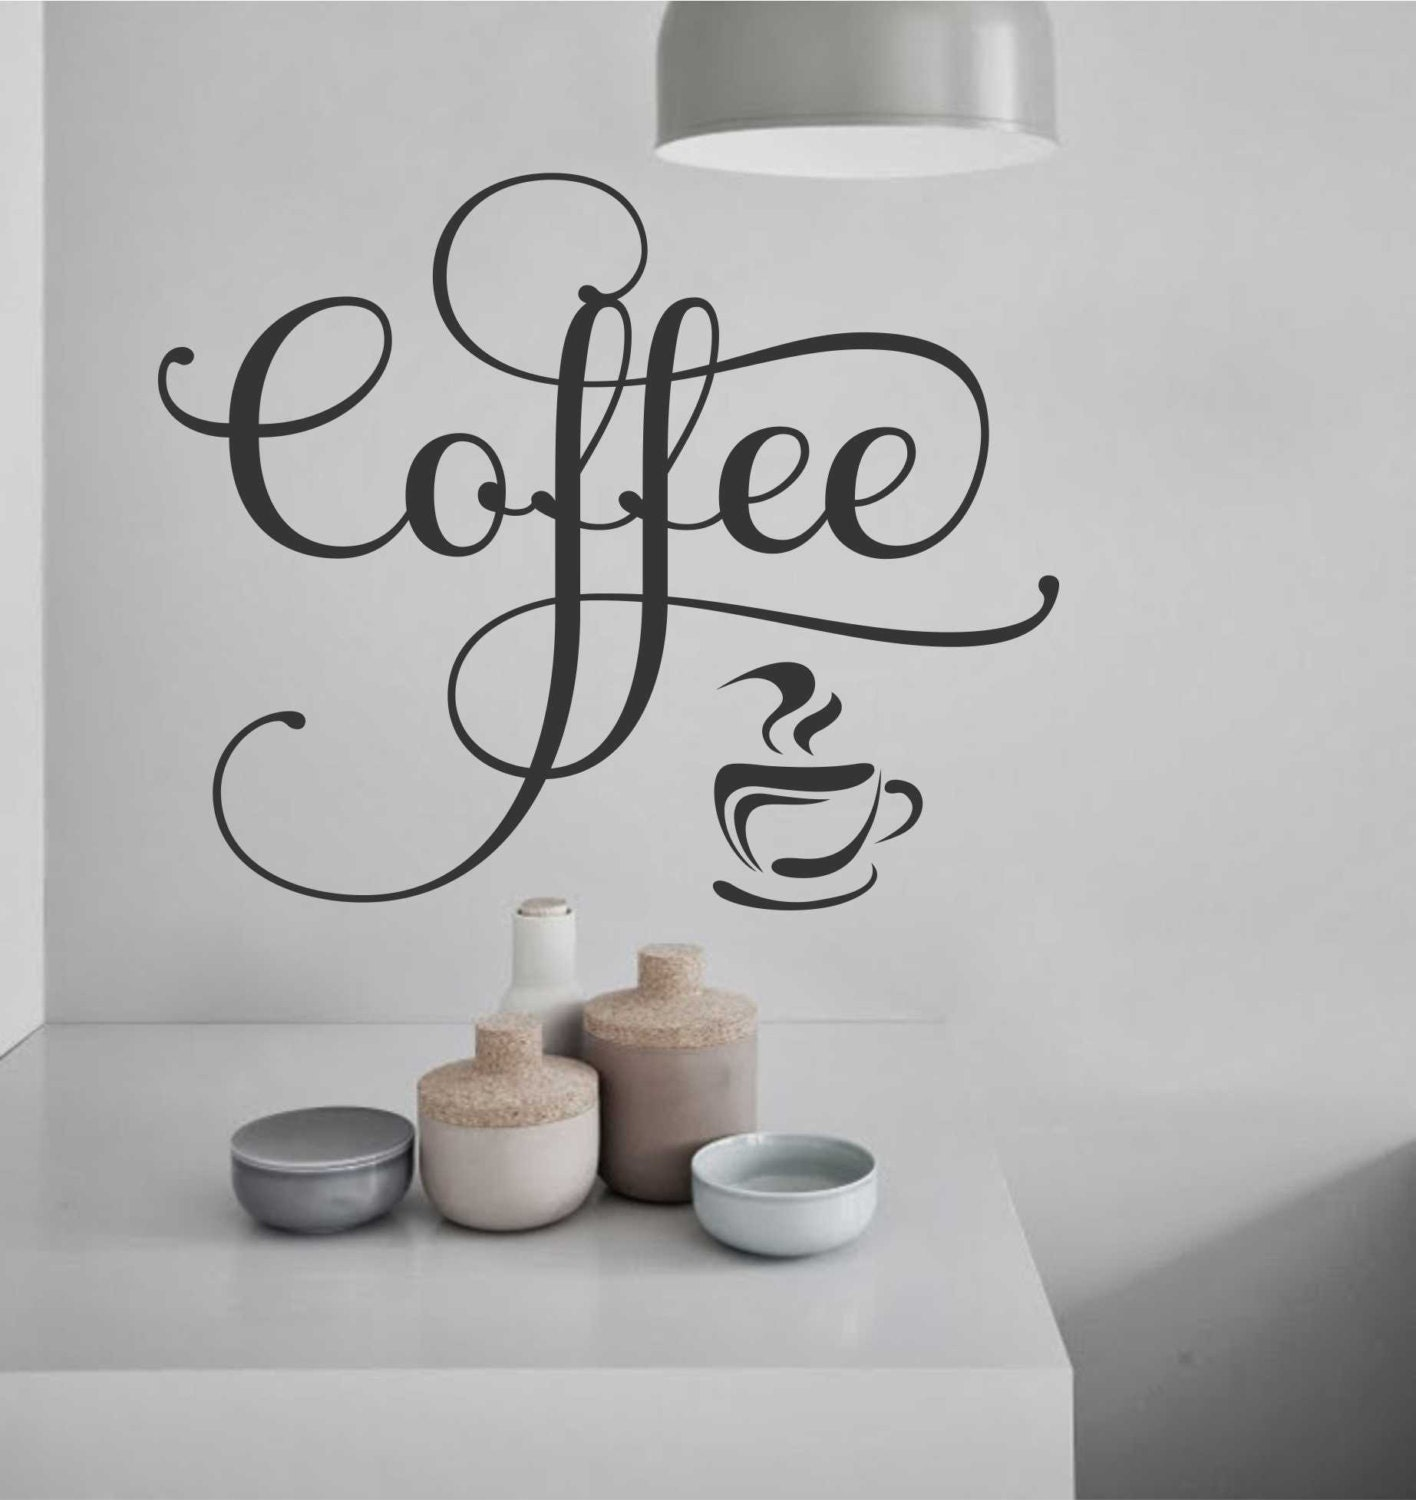 Coffee Cup Decal Vinyl Wall Lettering Vinyl Decals Wall